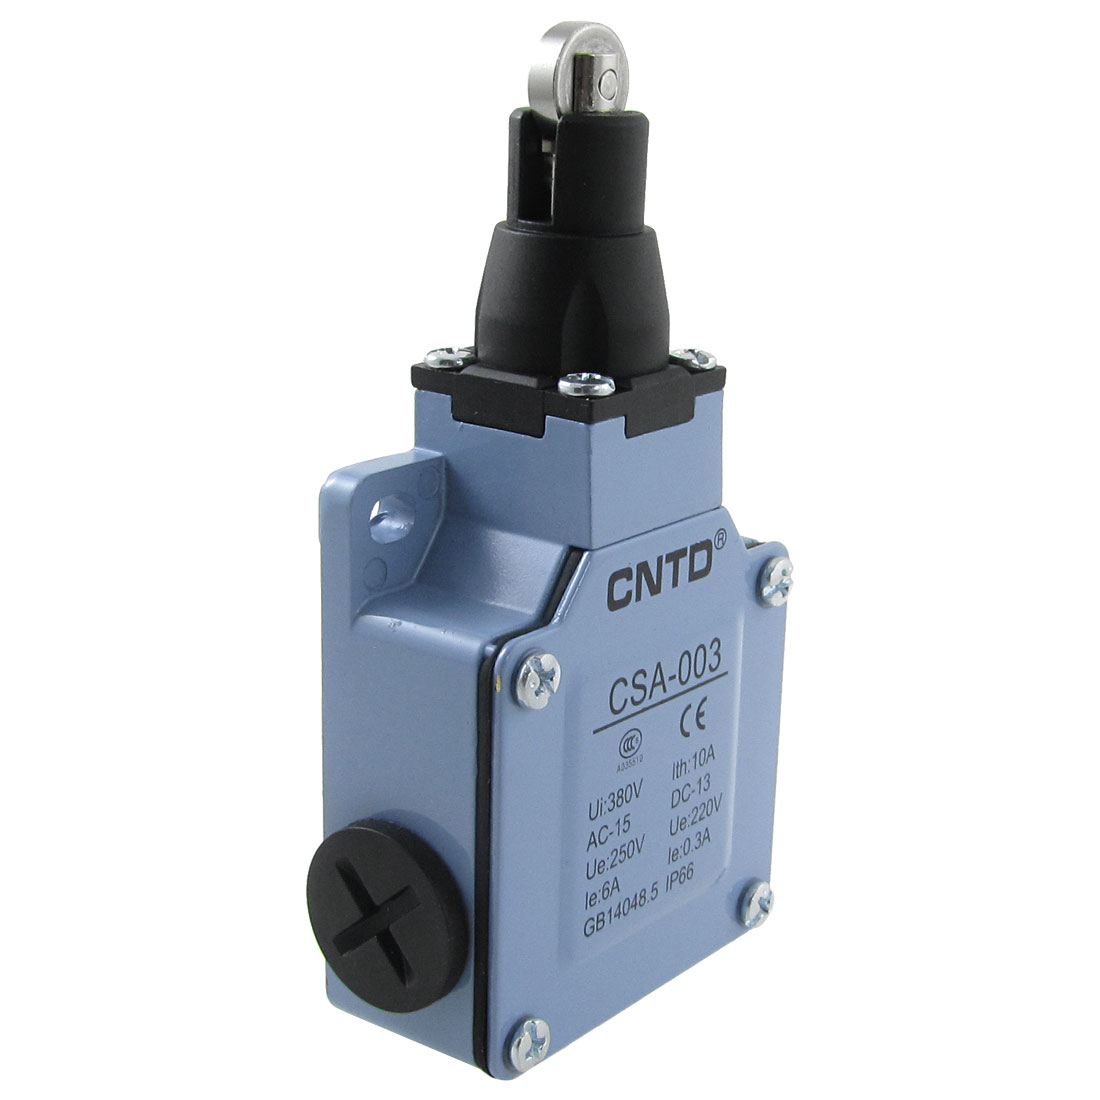 CSA-003 Parallel Roller Plunger Actuator Limit Switch 6A/250VAC 0.3A/220VDC